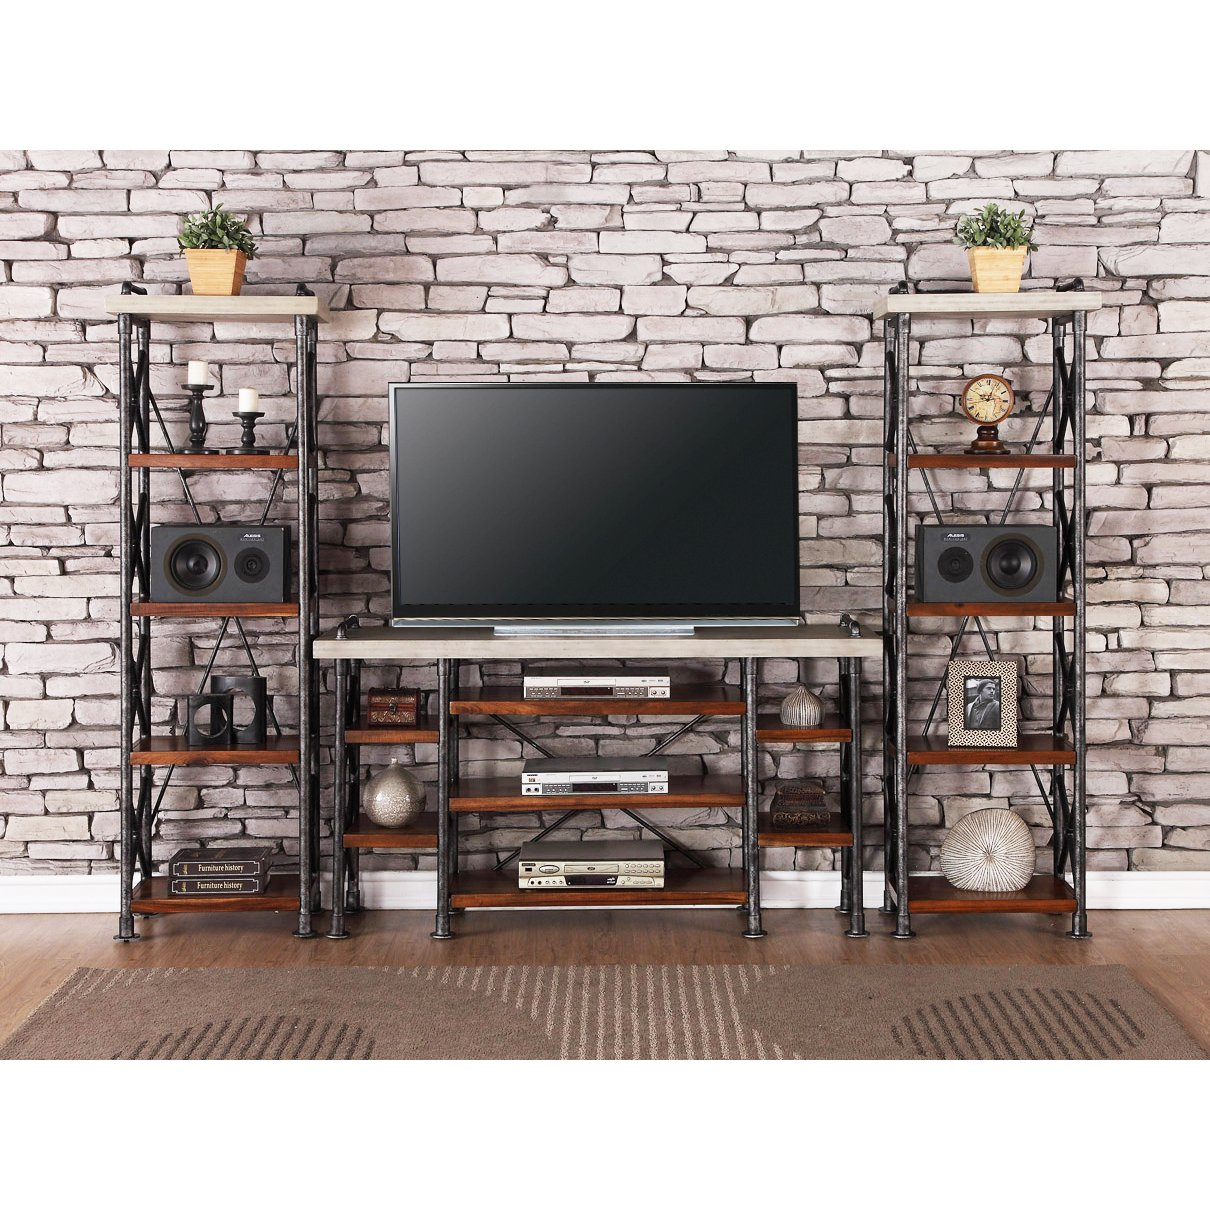 3-Piece Contemporary Entertainment Center - Steampunk | RC Willey Furniture  Store